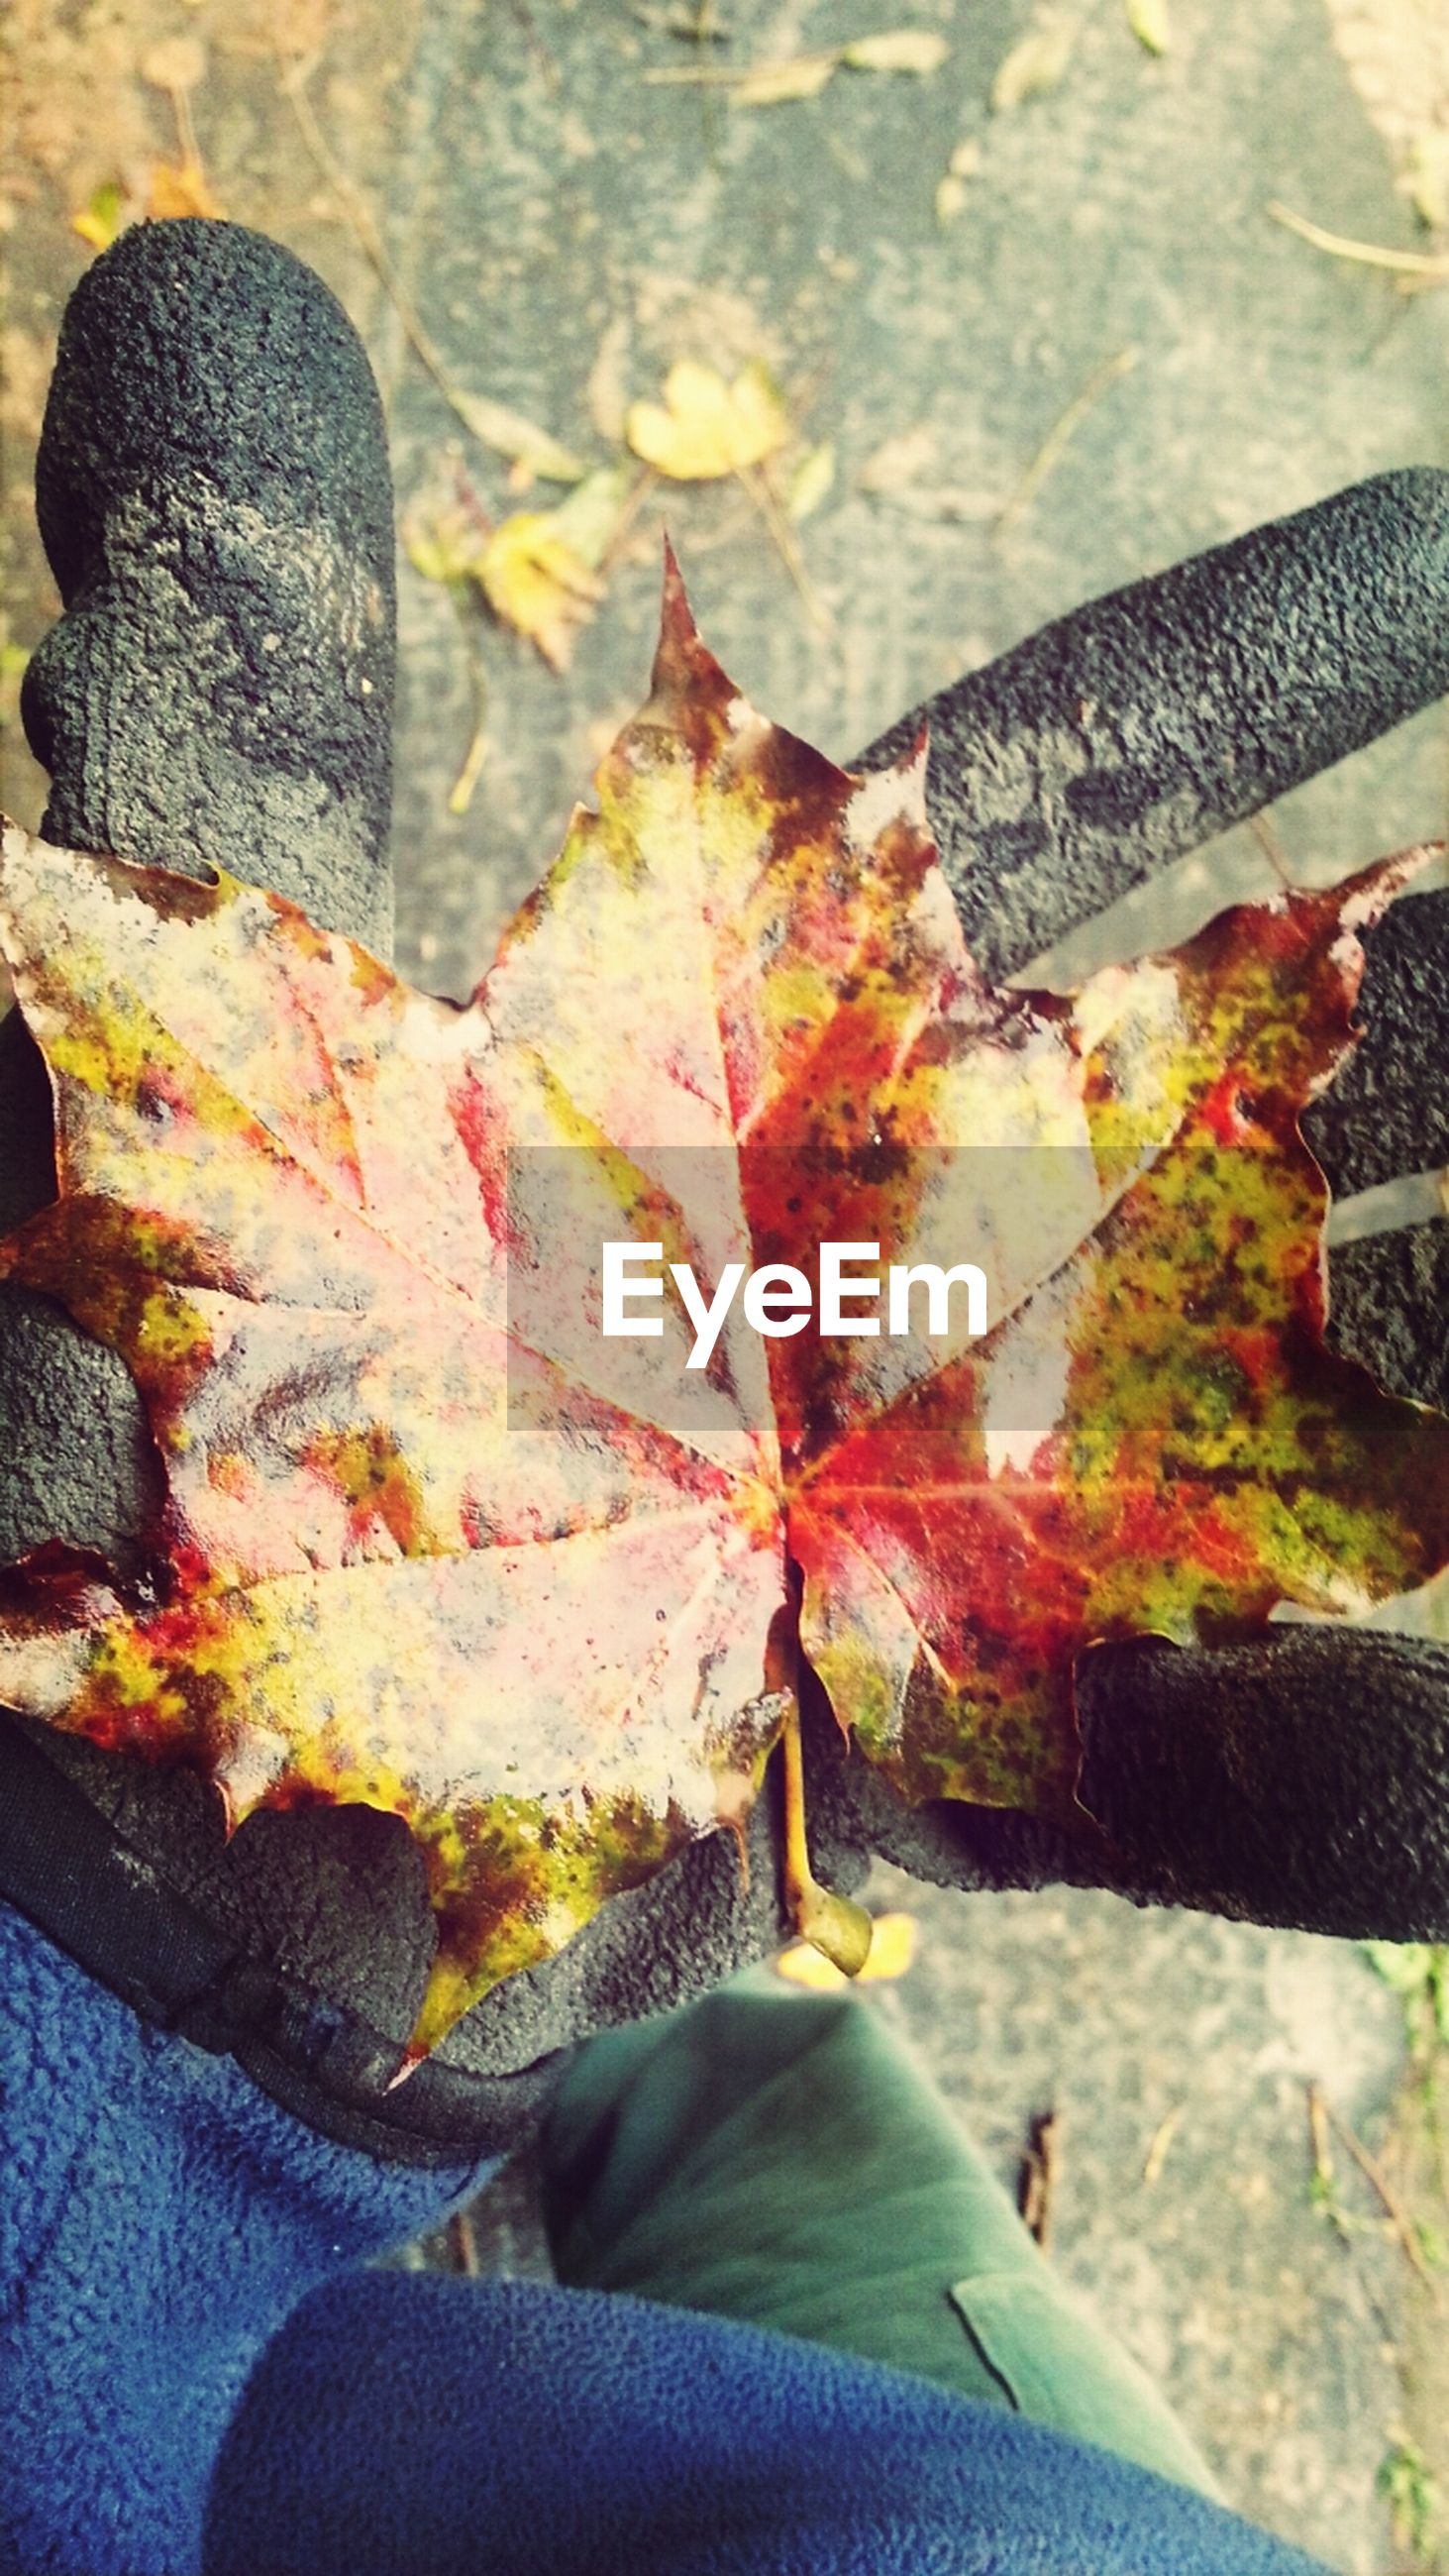 leaf, autumn, low section, season, change, water, close-up, leaves, person, day, part of, outdoors, lifestyles, nature, high angle view, unrecognizable person, focus on foreground